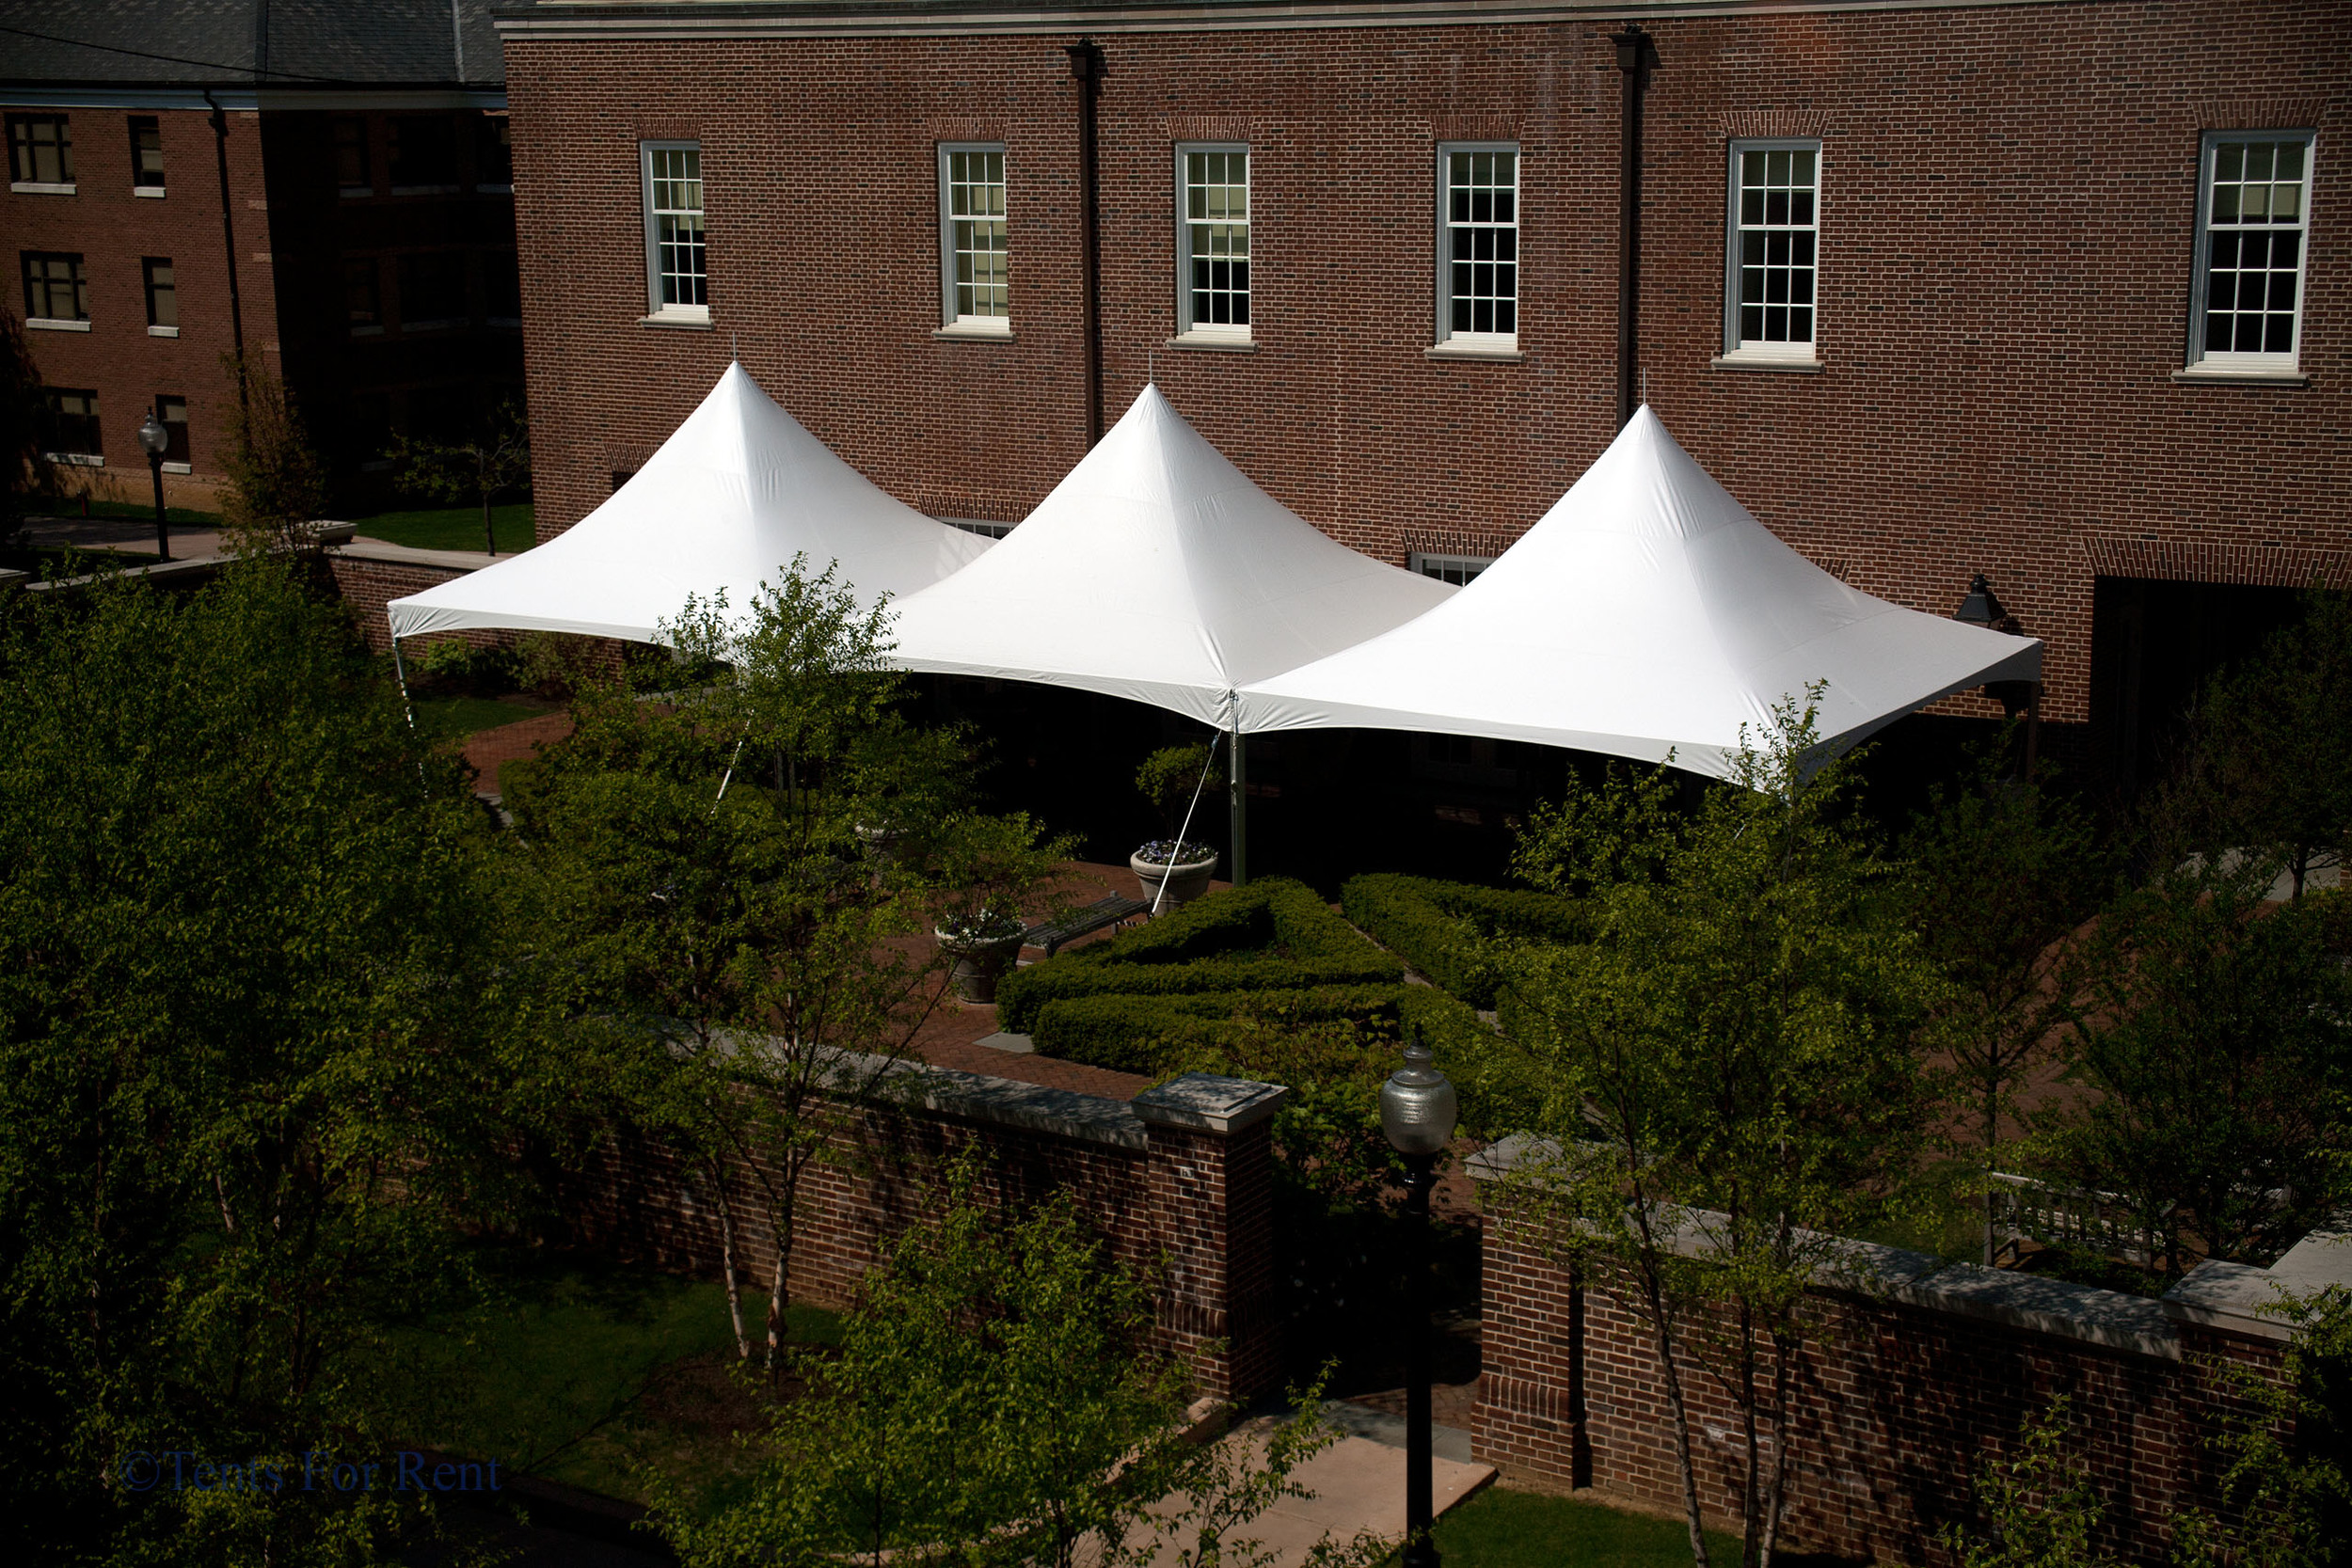 Small tents for rent in York, PA